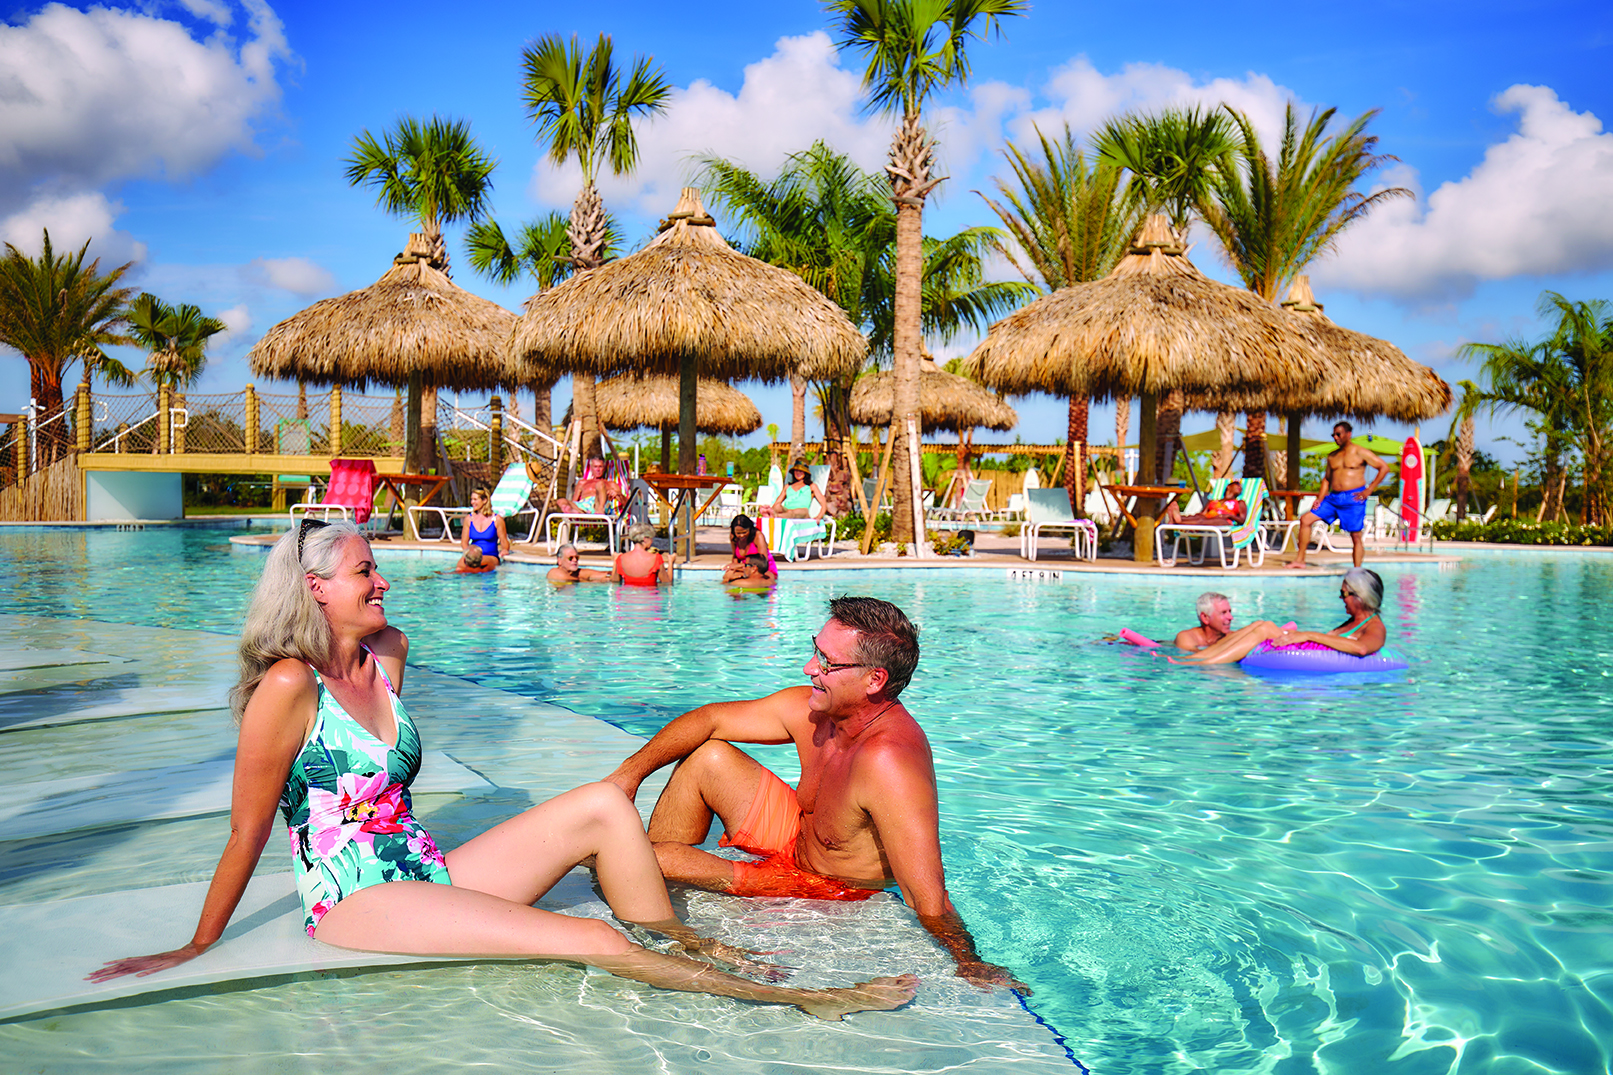 Residents gather around the island-inspired pool, cabanas and refreshment bars